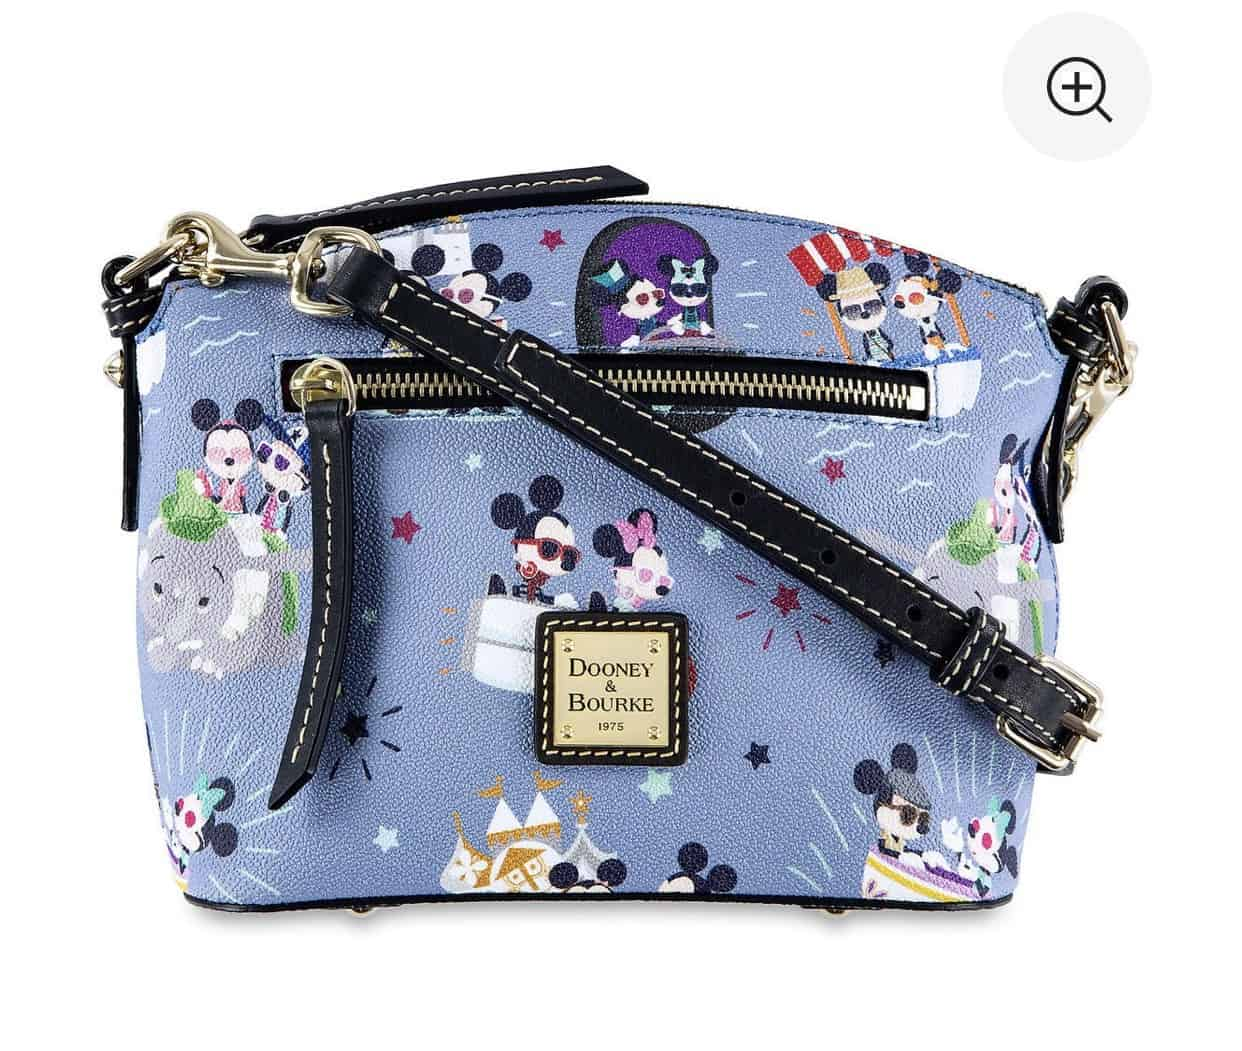 Dooney and Bourke Disney Bags 1